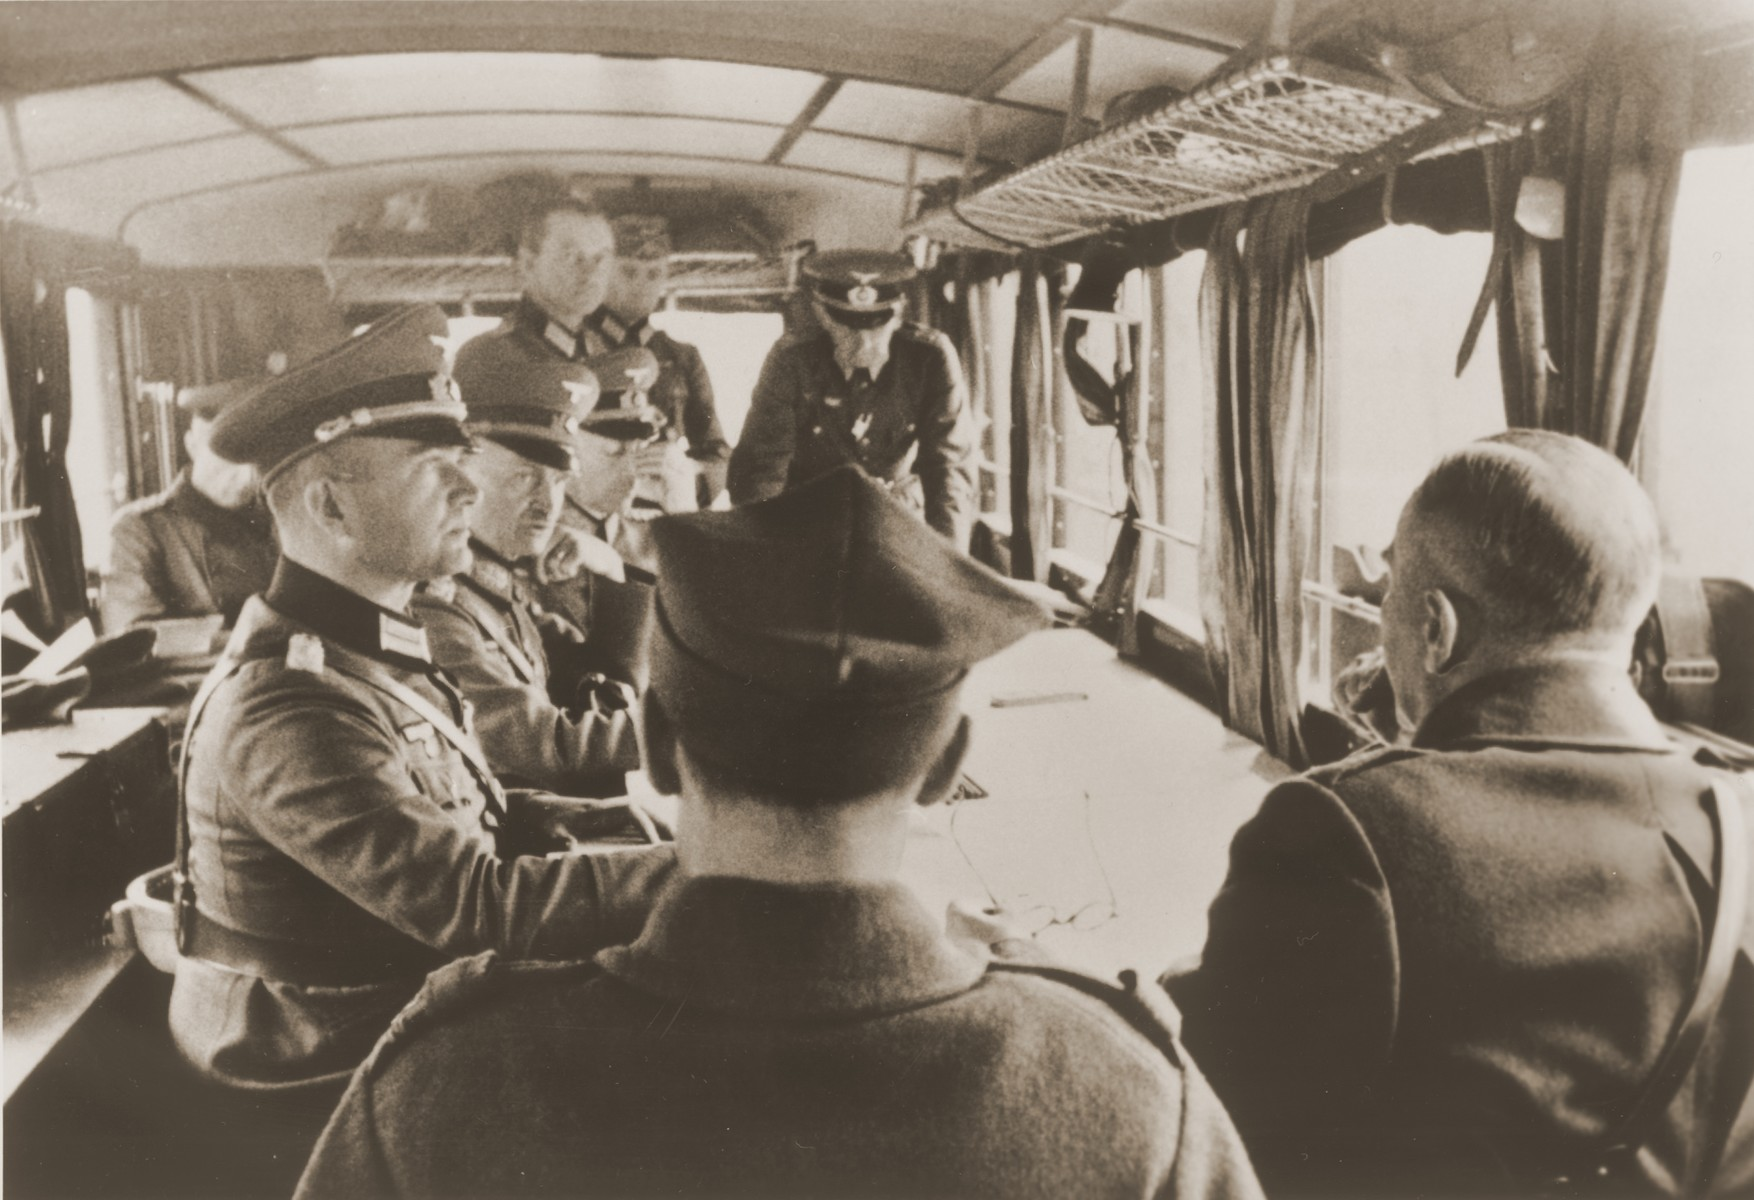 German General Blaskowitz (left, center of the table) presides over the official surrender of the Polish Army in a railway car at the Skoda Motor Works near Warsaw.